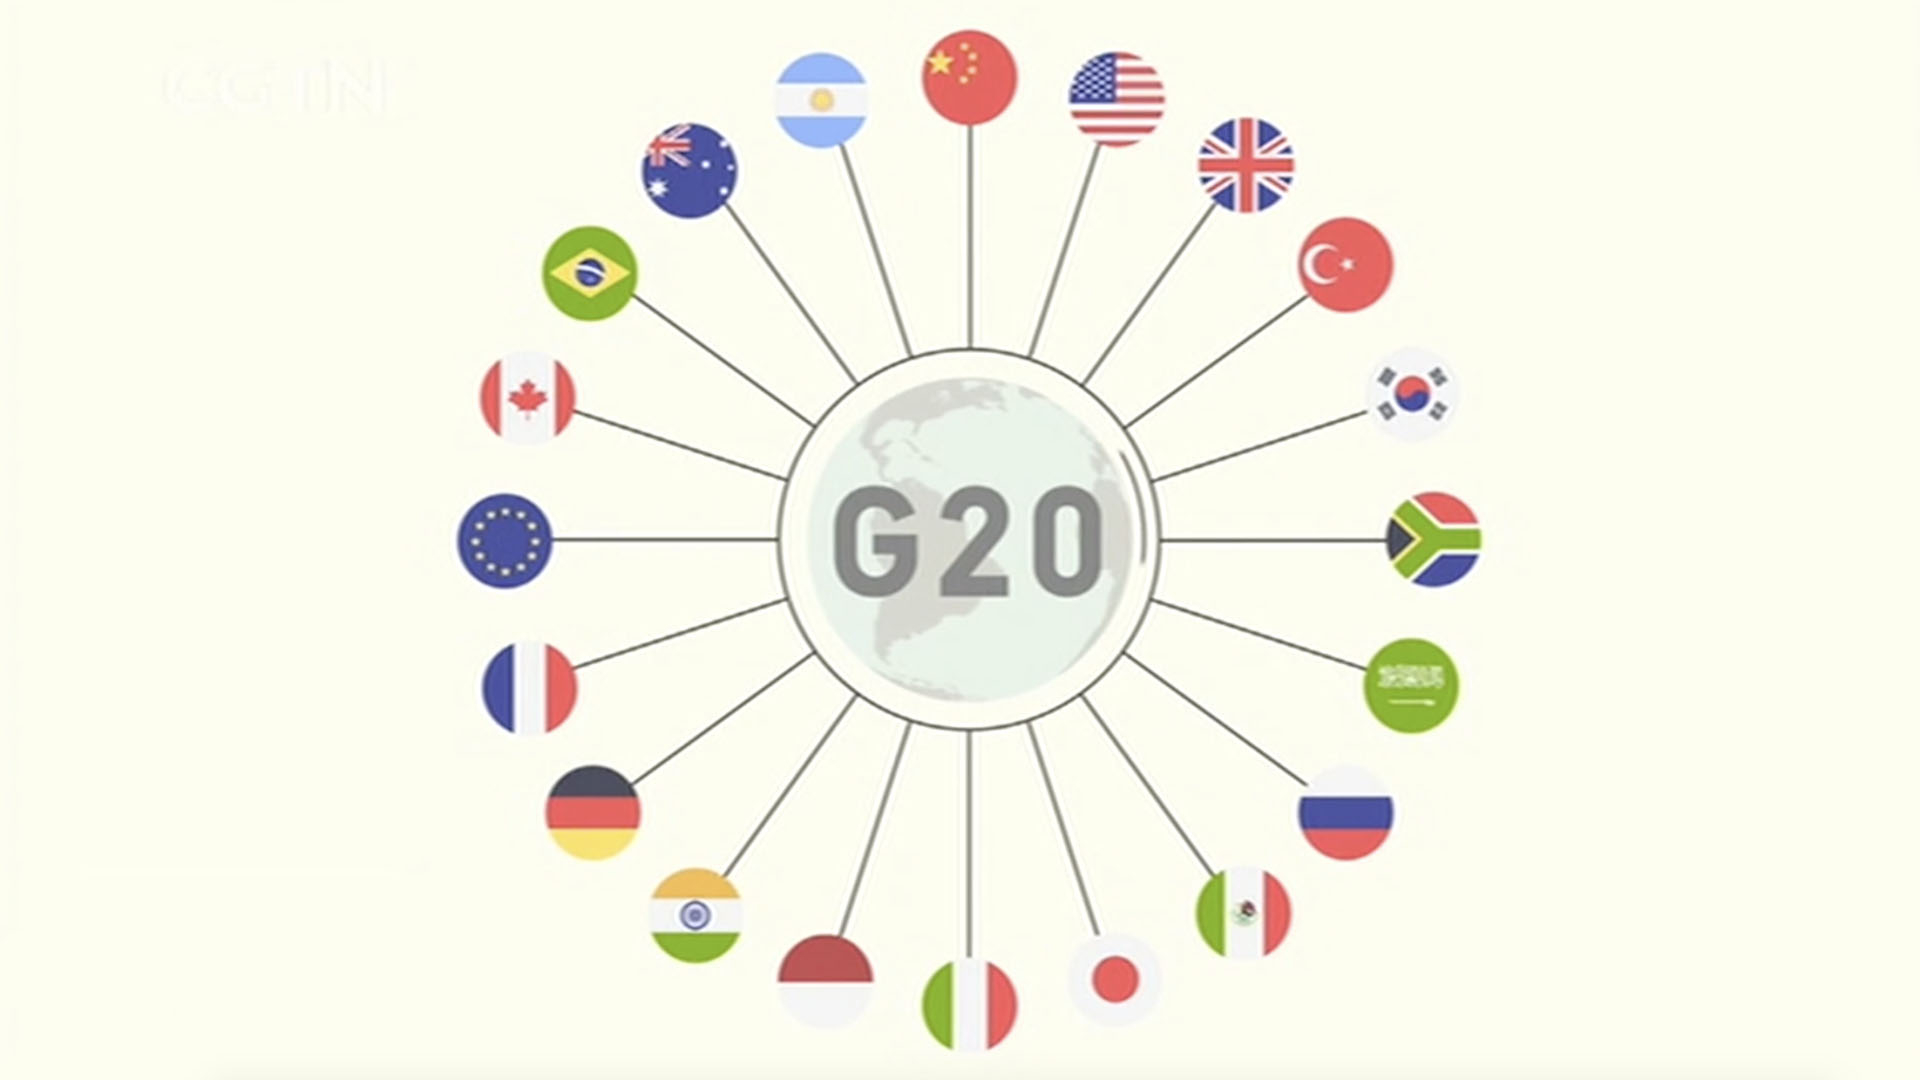 The G20 summit should be used as a vehicle for tangible solutions instead of political wrangling